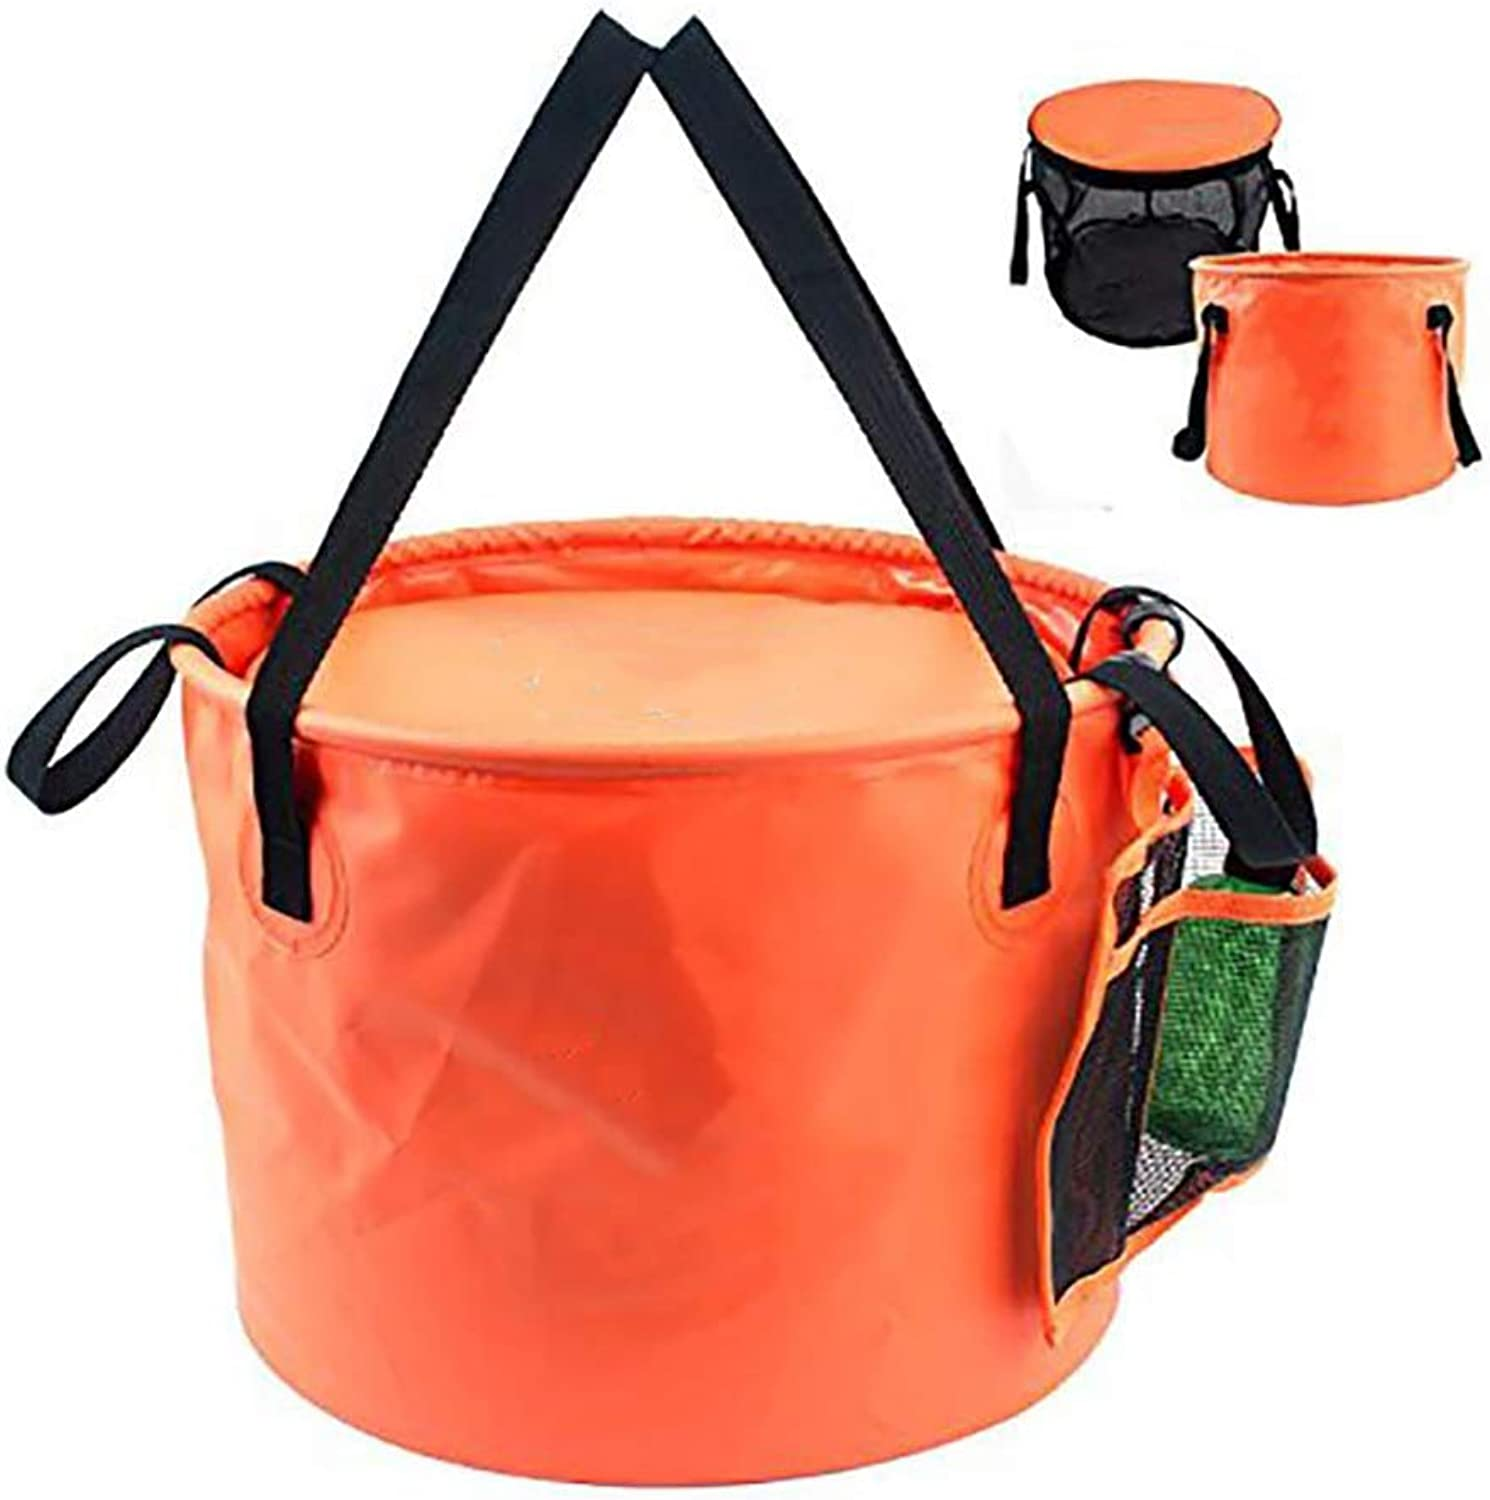 Outdoor Folding Double Drain Basket, 4 in 1 PVC Collapsible Bucket Foldable Camping Water Bucket,Fishing Cleaning Bucket Car